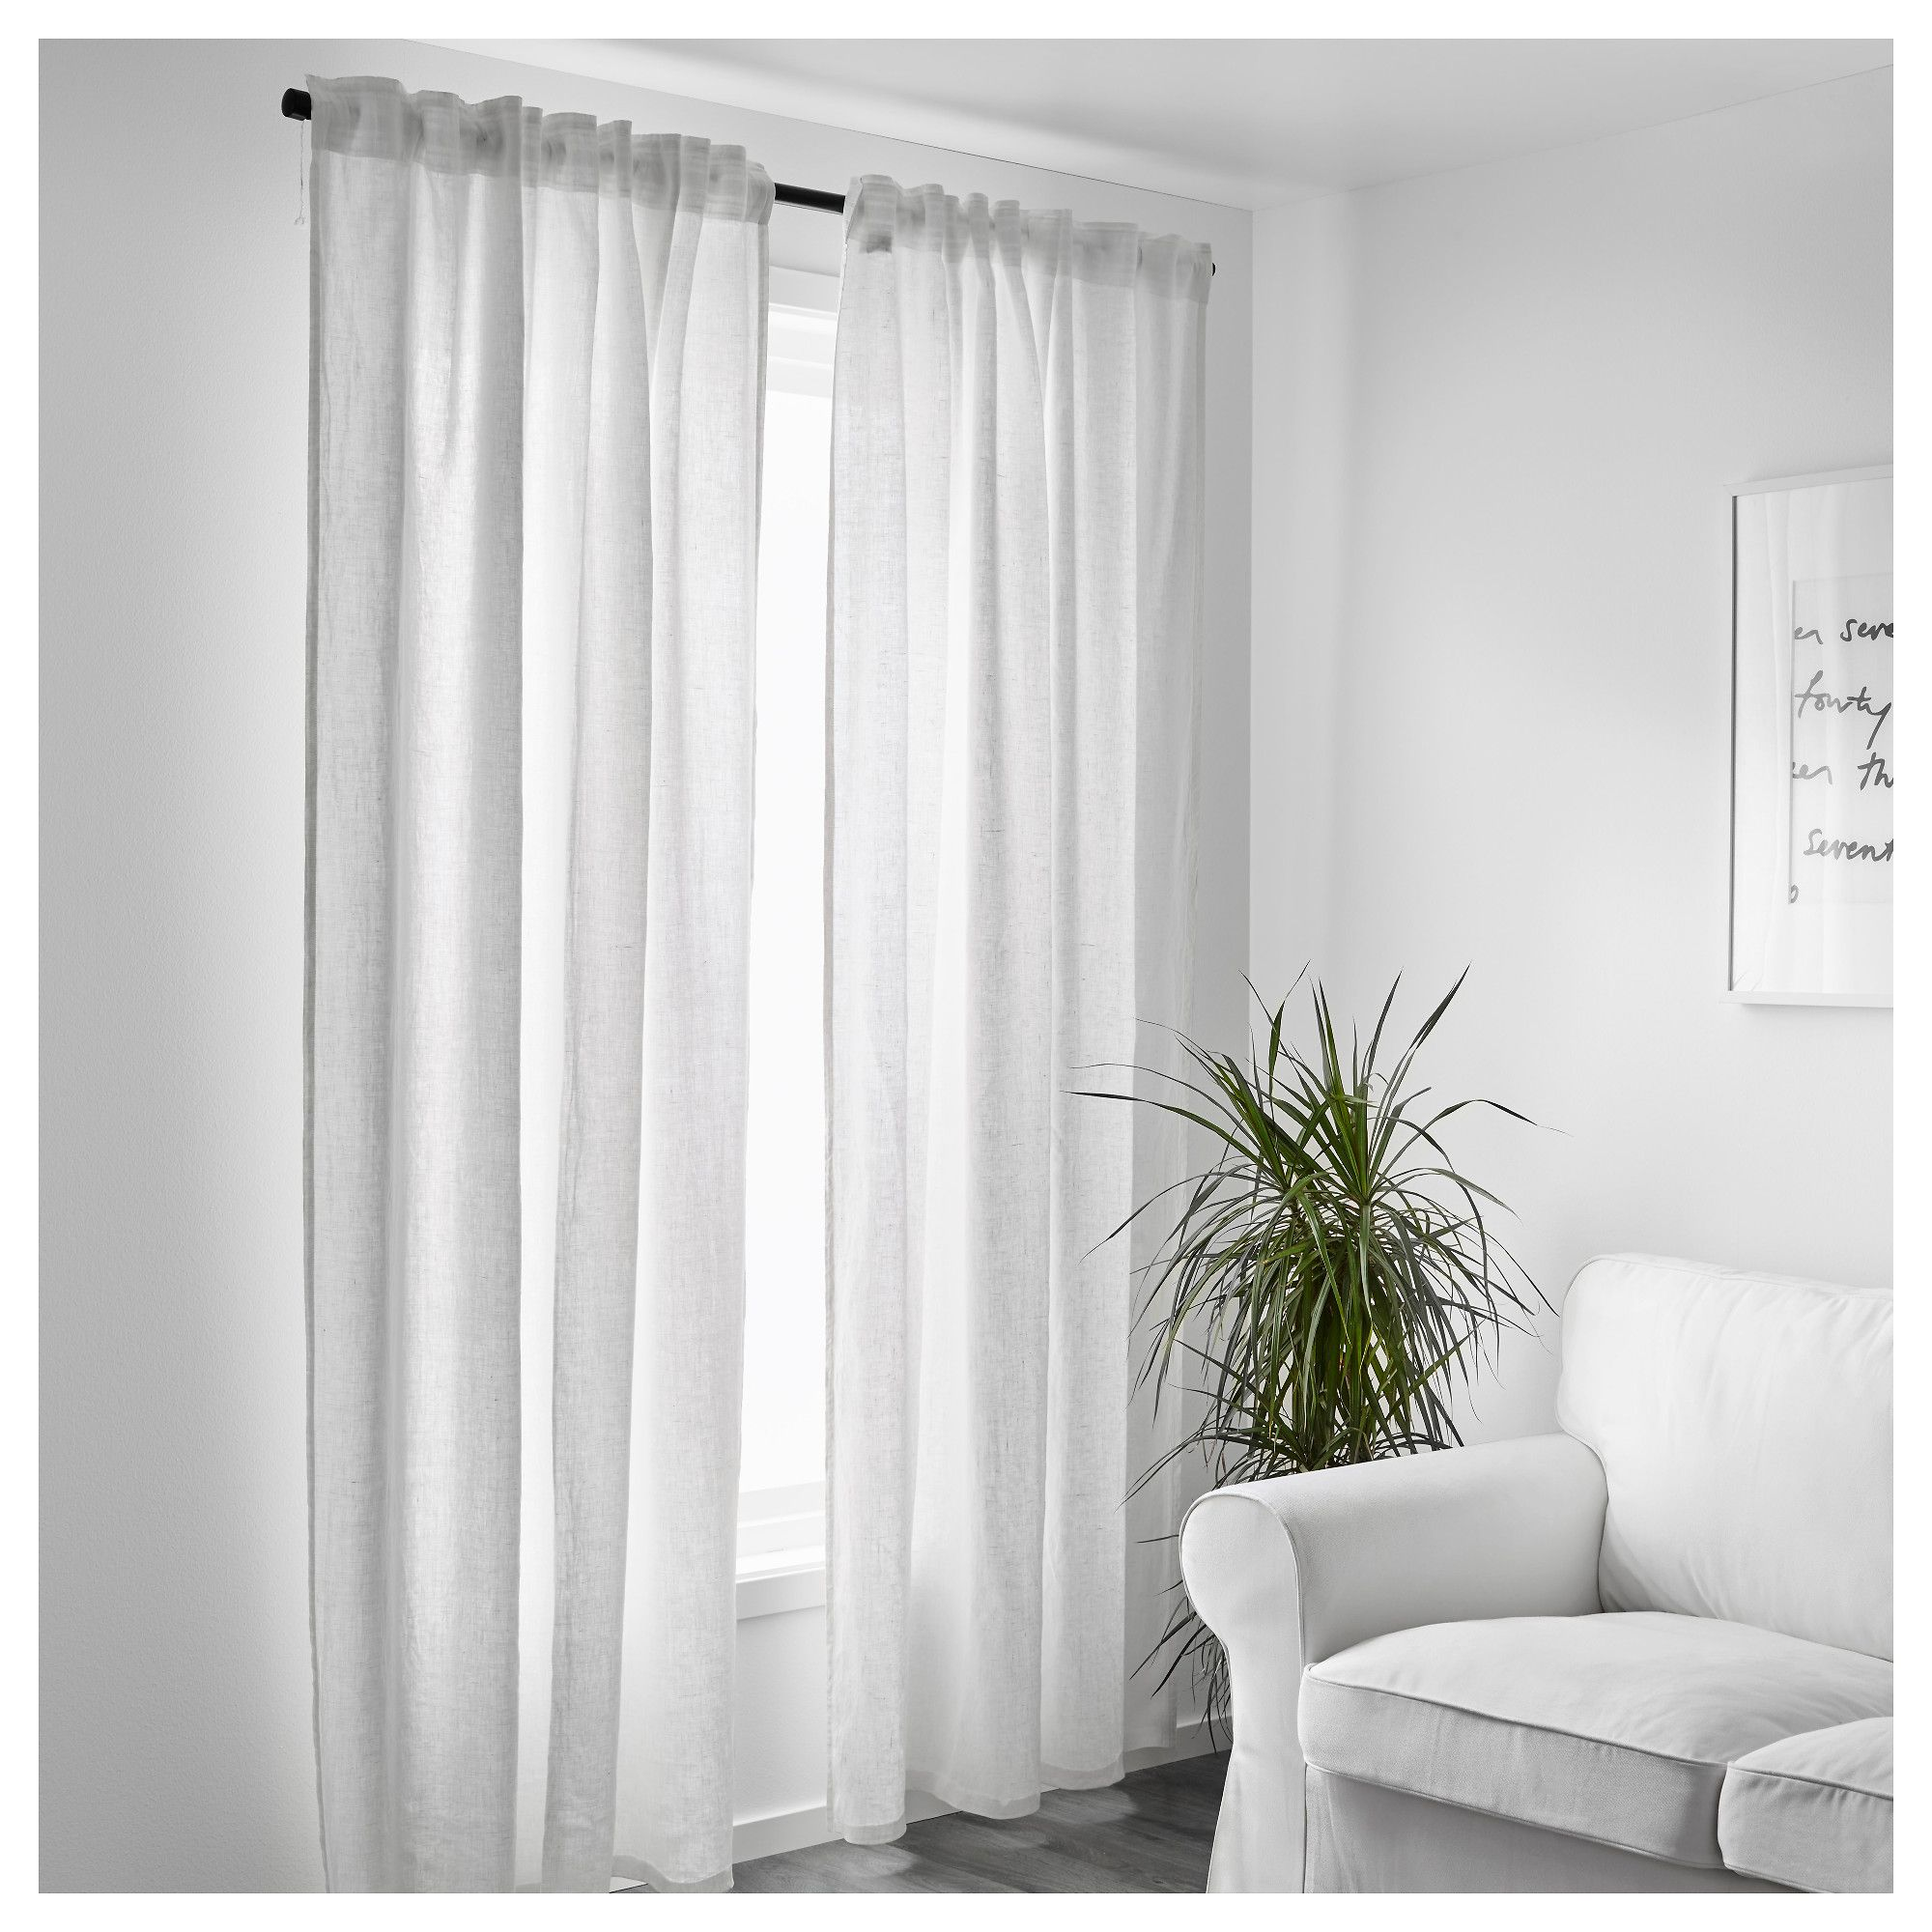 Aina Curtains 1 Pair White 57x98 - Ikea Vorhang Theresia